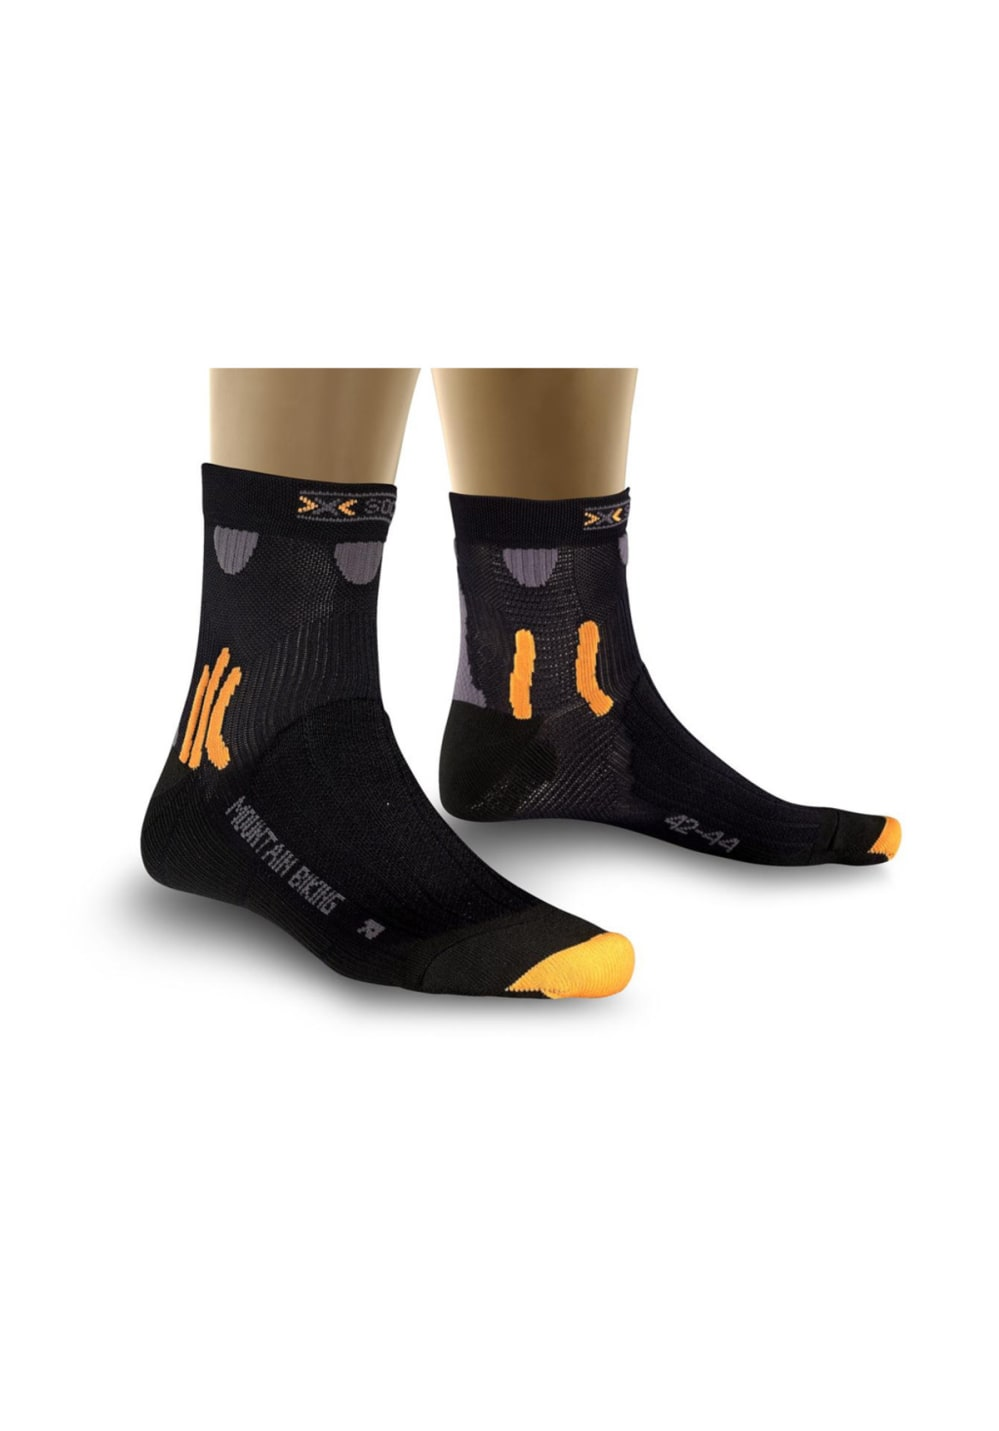 X-Socks Mountain Biking Black Laufsocken - Schwarz, Gr. 35-38